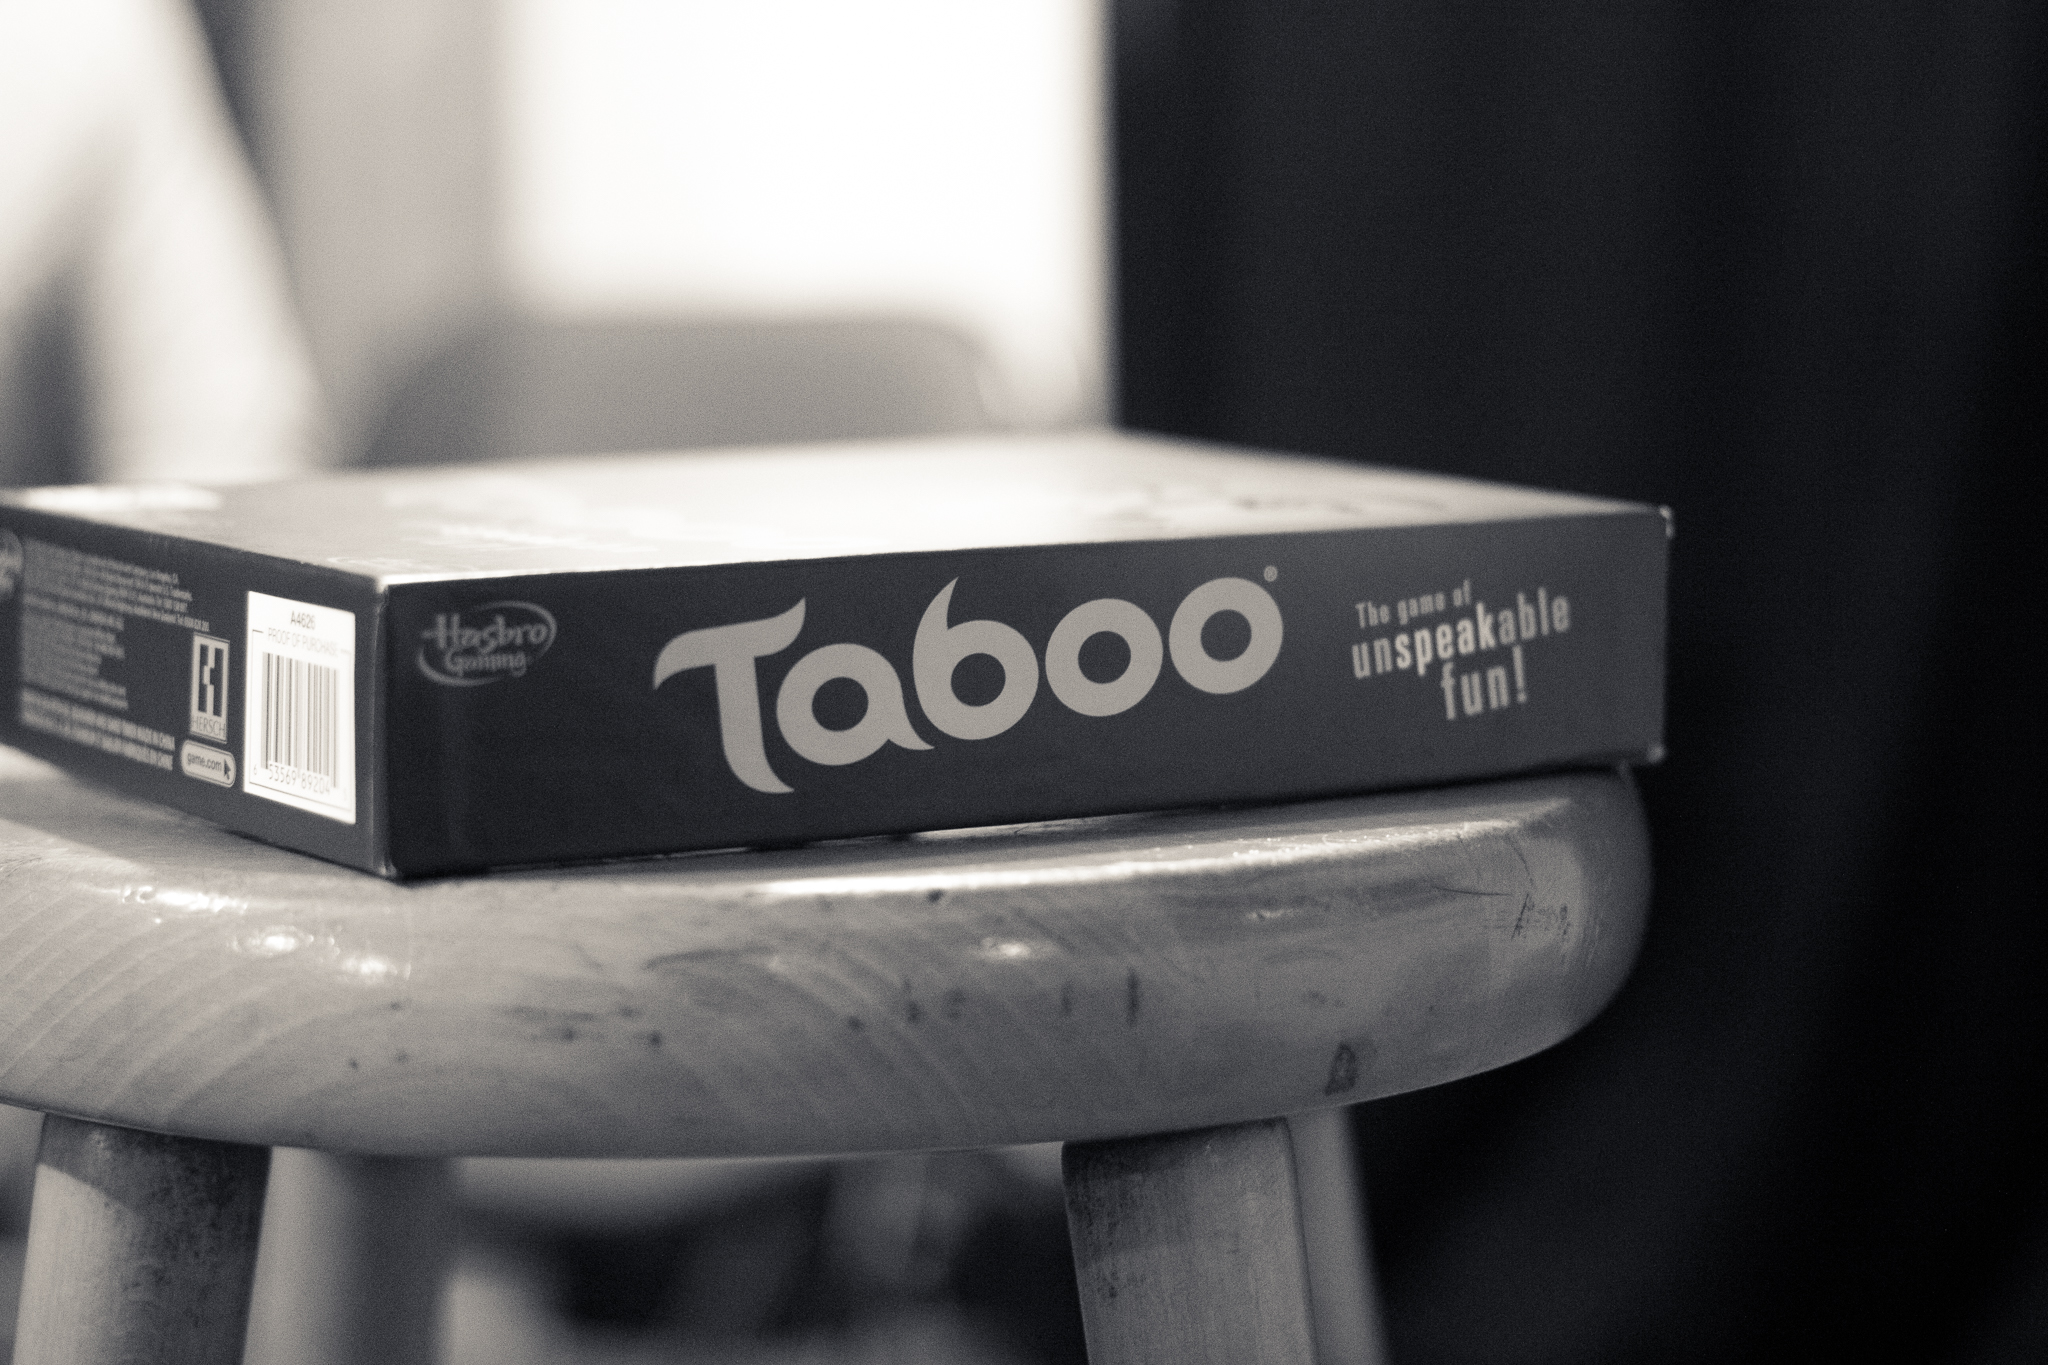 The Ministry of Taboo. Souls are sifted like wheat during this game.